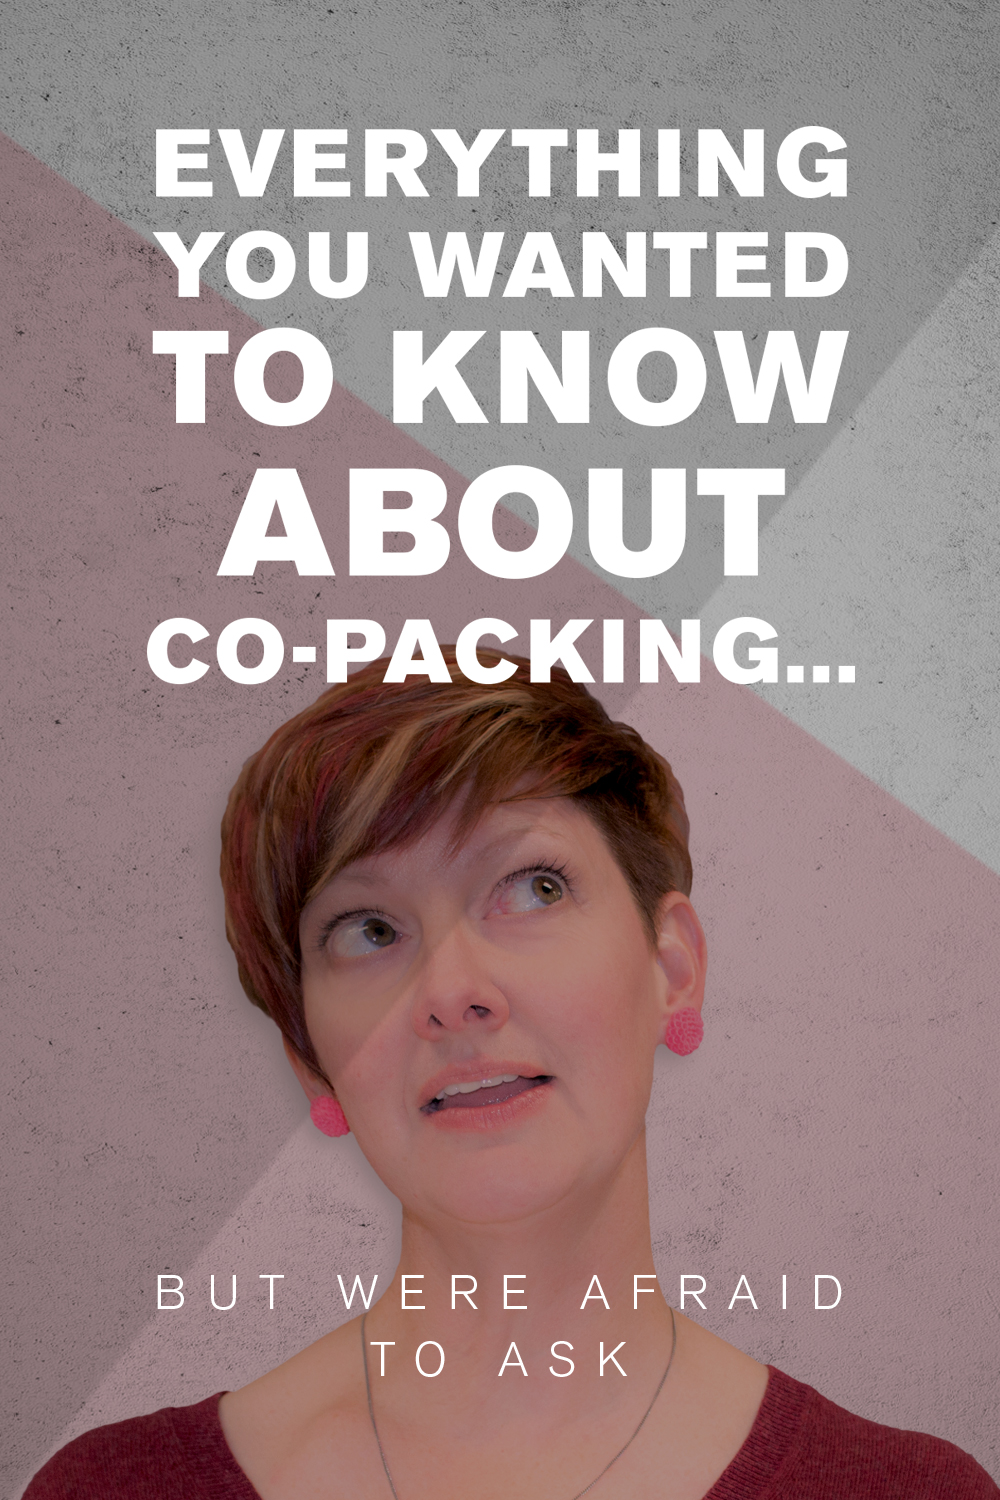 Everything You Wanted To Know About Co-Packing... But Were Afraid To Ask